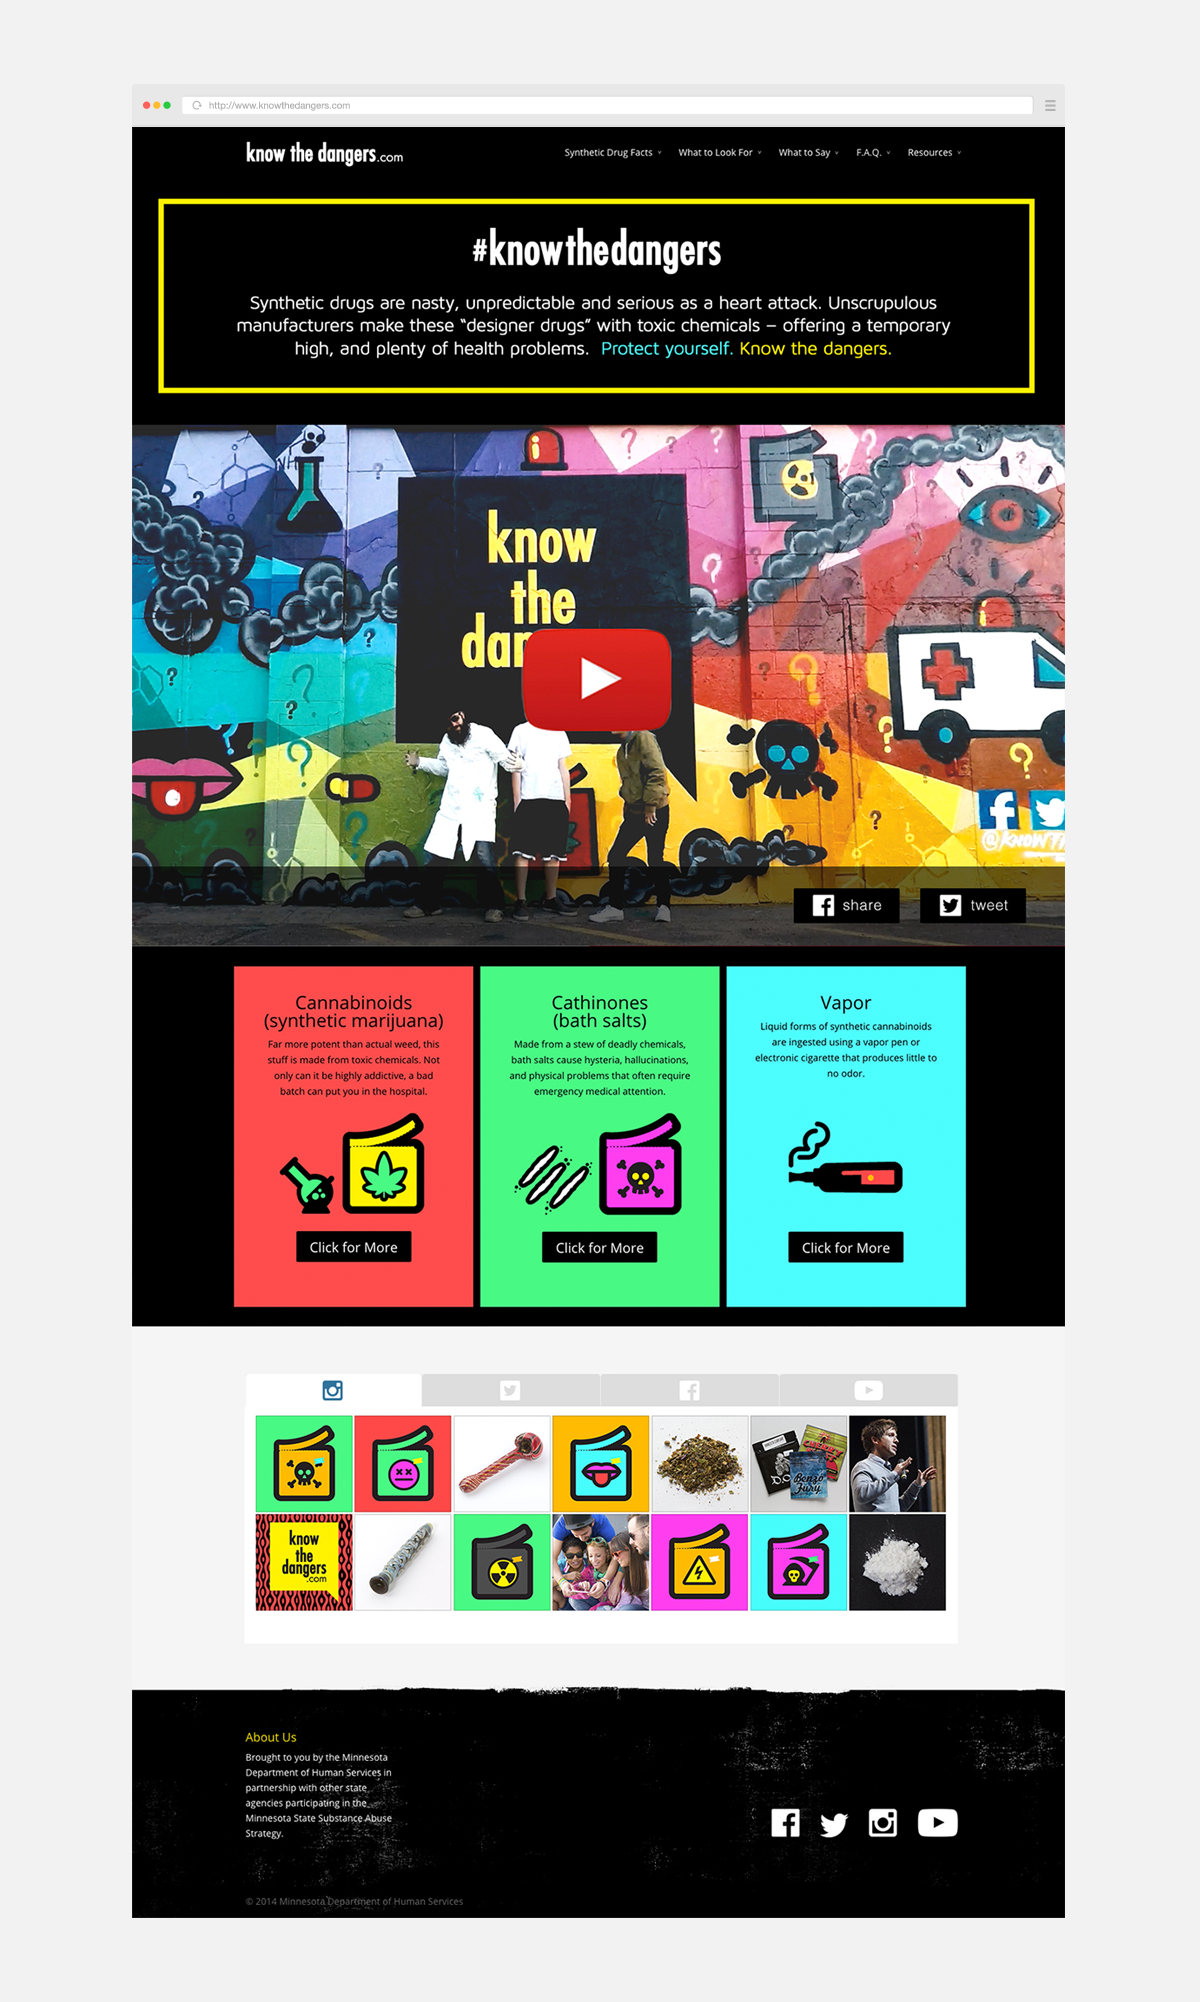 know-the-dangers-fullpage-layout-2.png